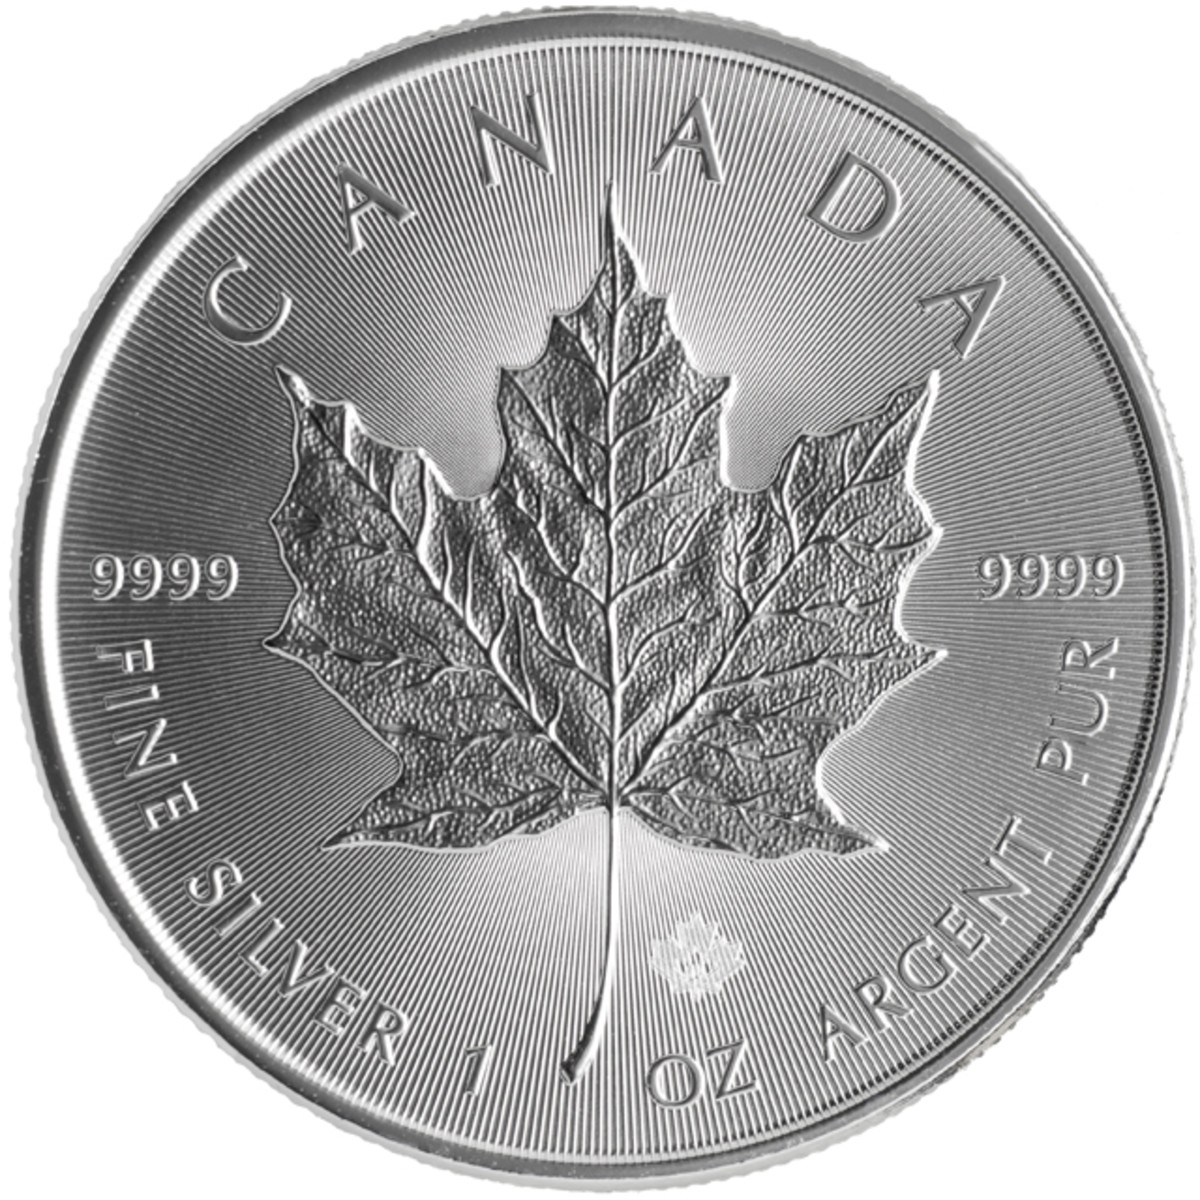 With a price and supply squeeze on silver Eagles, buyers may look towards other forms of silver like Canadian Maple Leafs.